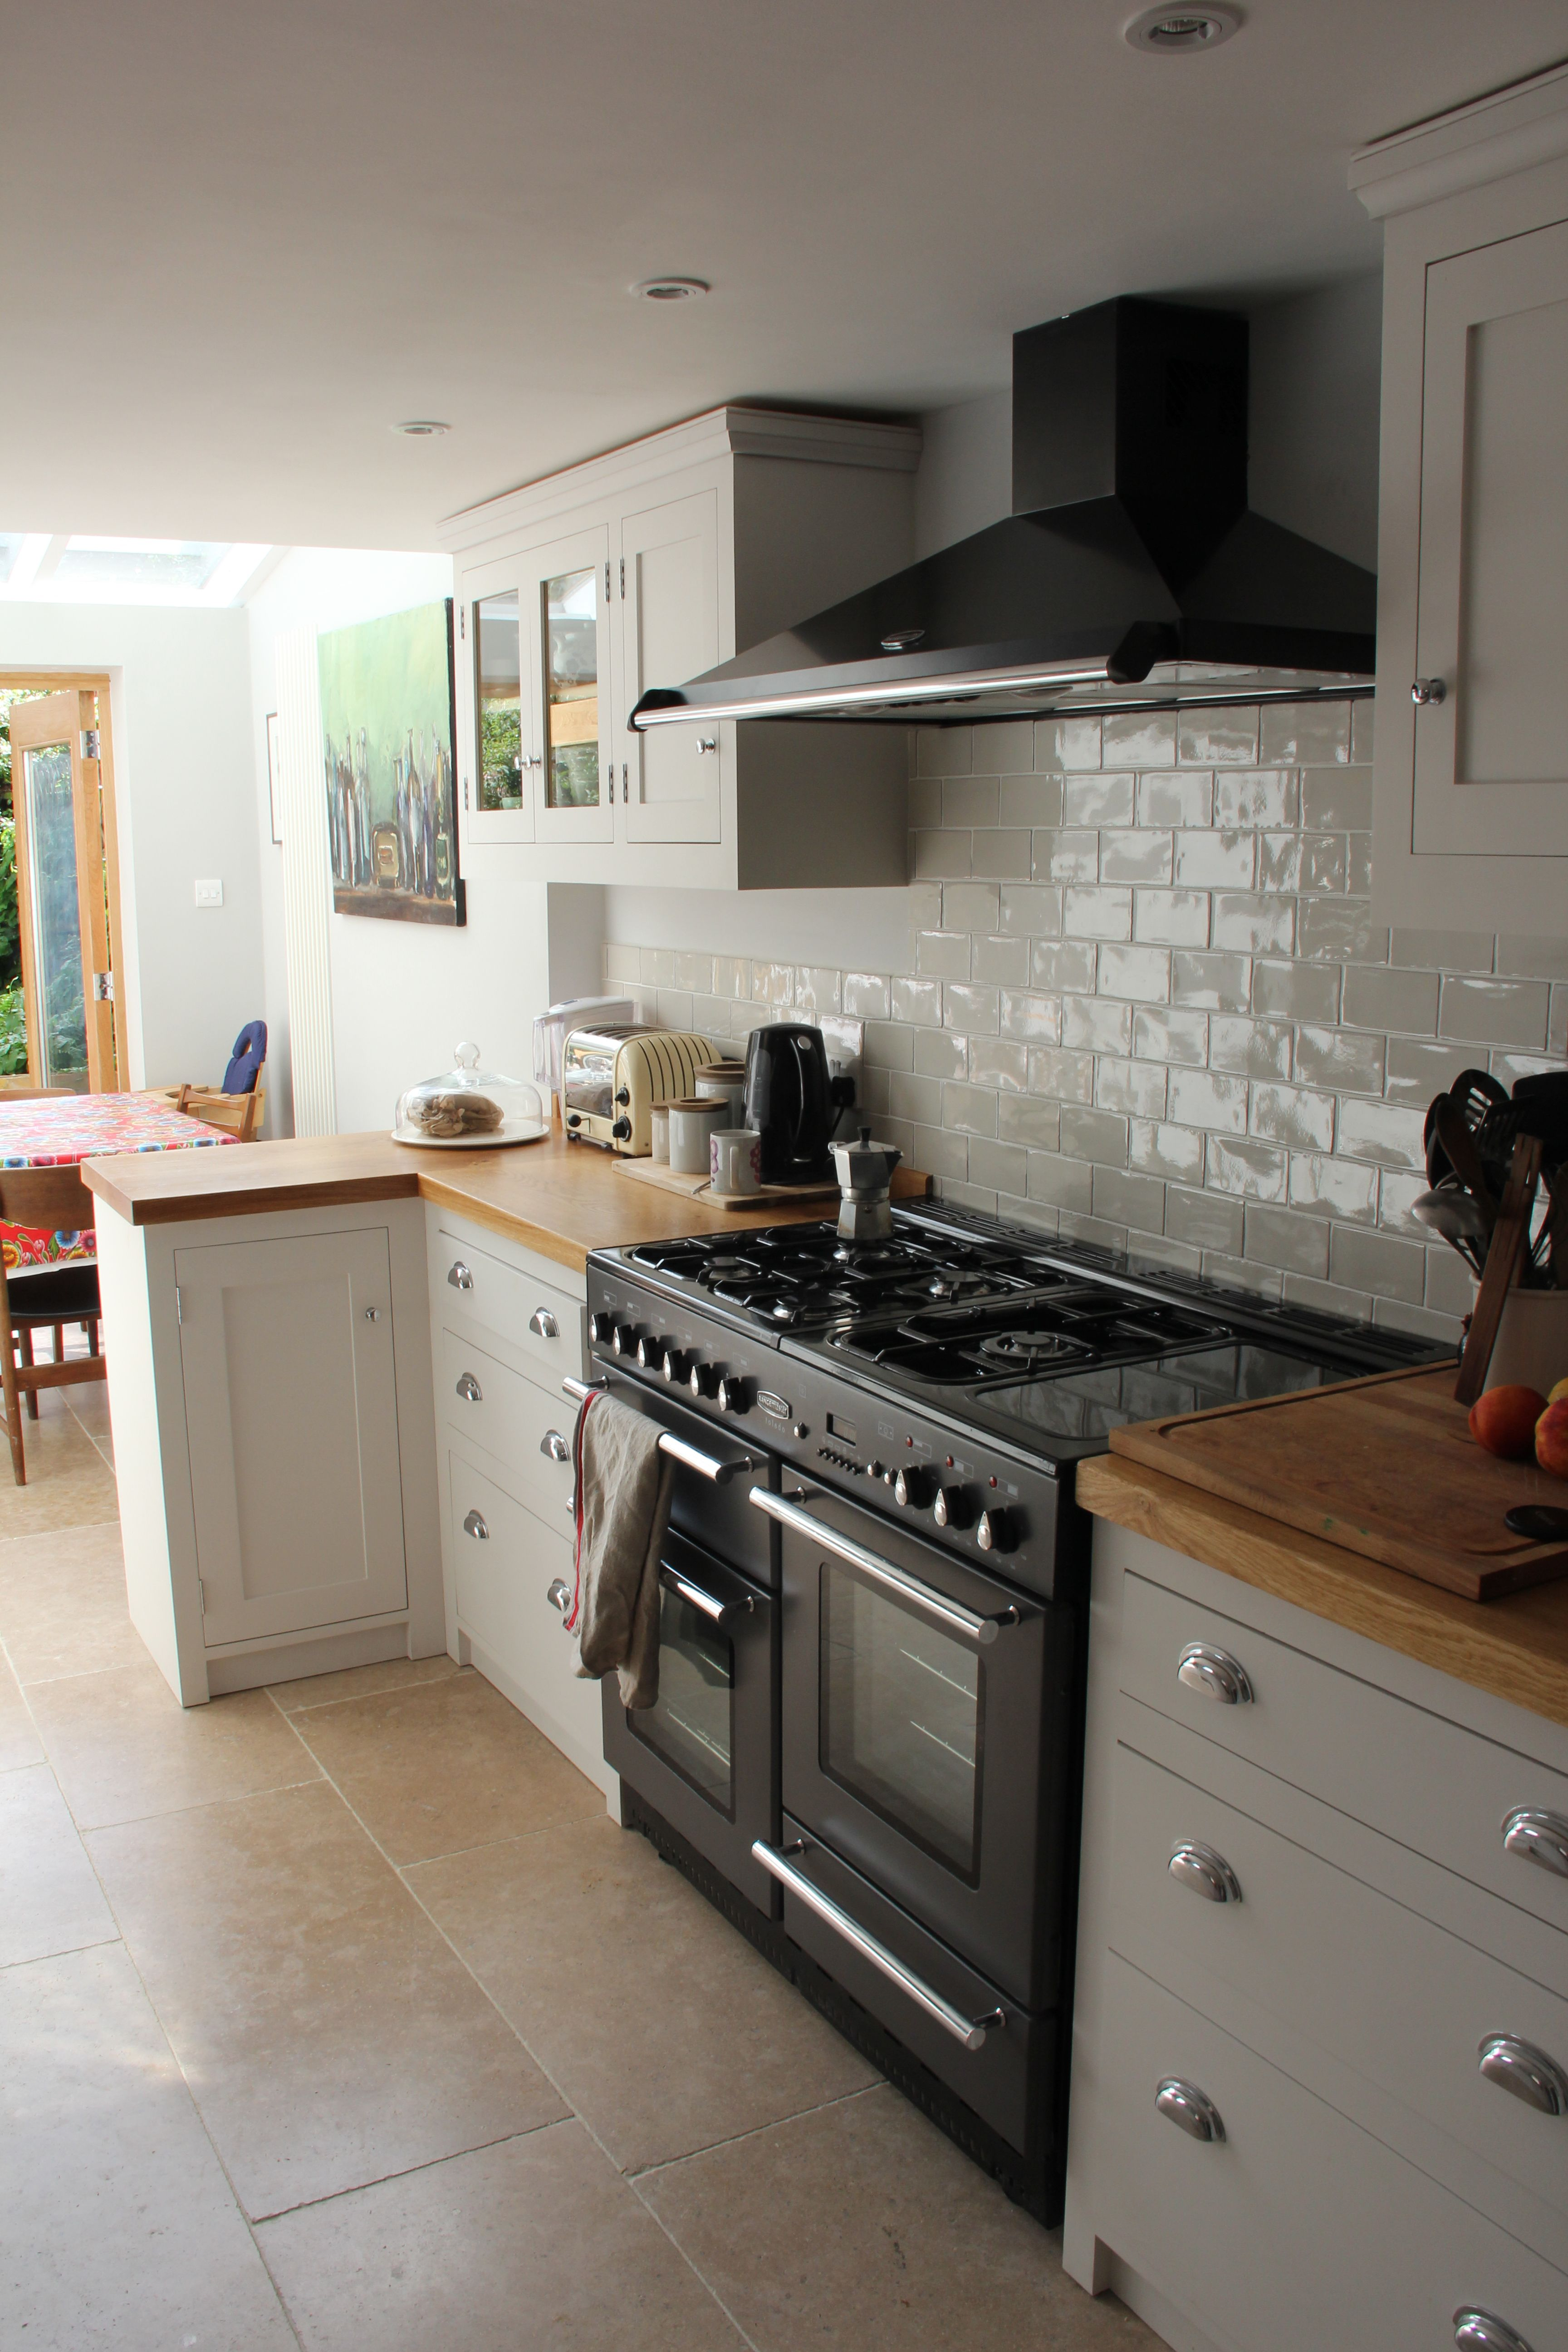 Rangemaster Toledo 110 In Gunmetal With The Matching Hood Tiles From Topps Tiles Chic Range Apparentl Home Kitchens Farmhouse Kitchen Design Kitchen Design